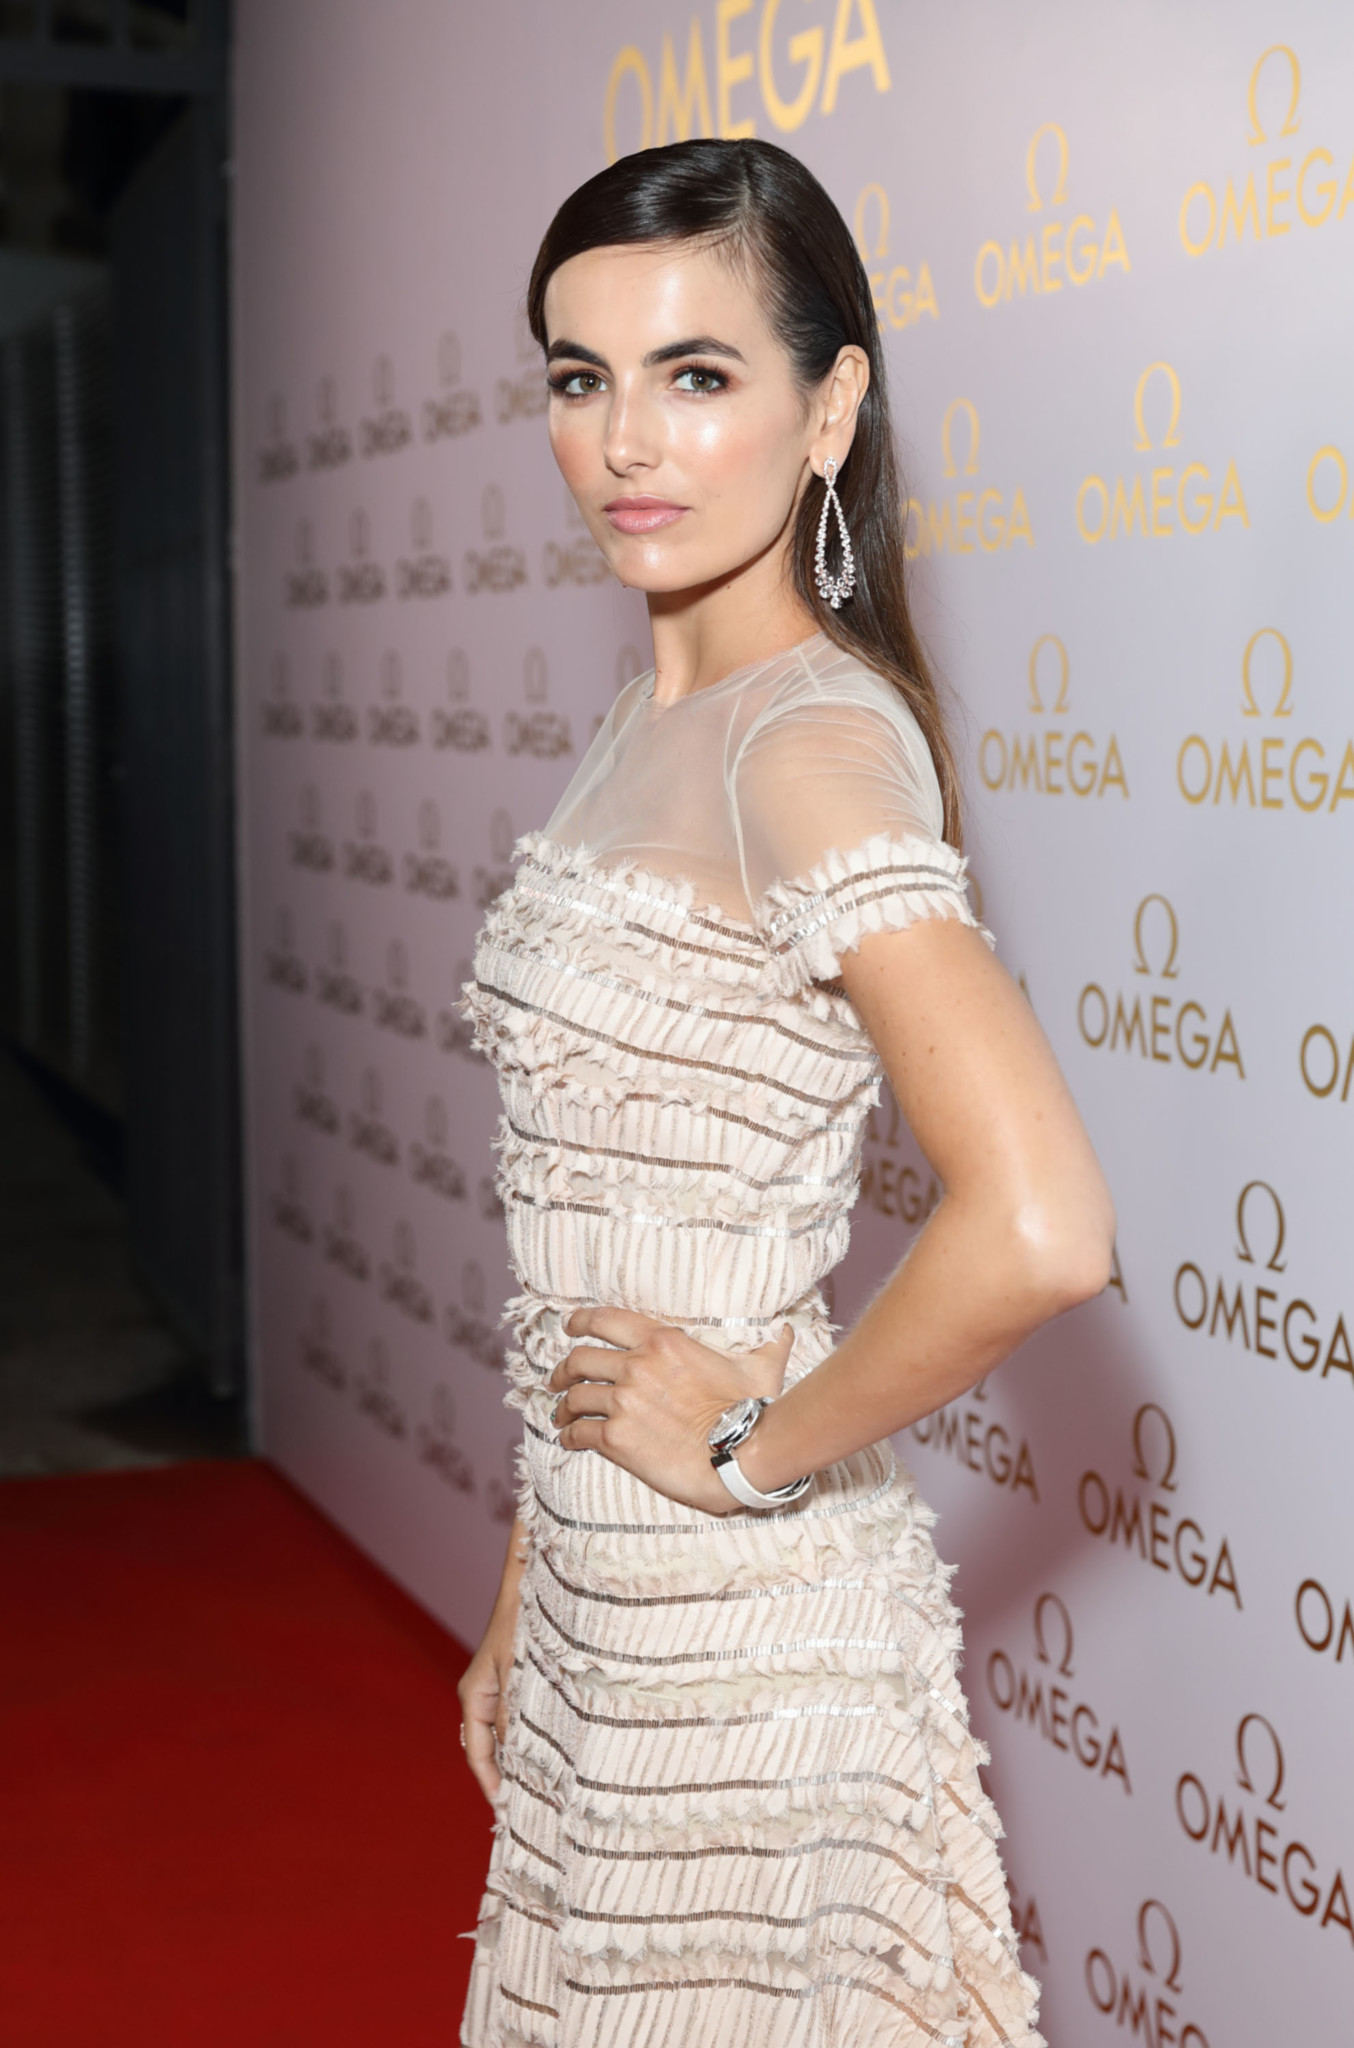 RIO DE JANEIRO, BRAZIL - AUGUST 06:  Camilla Belle attends the launch of OMEGA House Rio 2016 on August 6, 2016 in Rio de Janeiro, Brazil.  (Photo by Mike Marsland/Mike Marsland/WireImage for Omega) *** Local Caption *** Camilla Belle